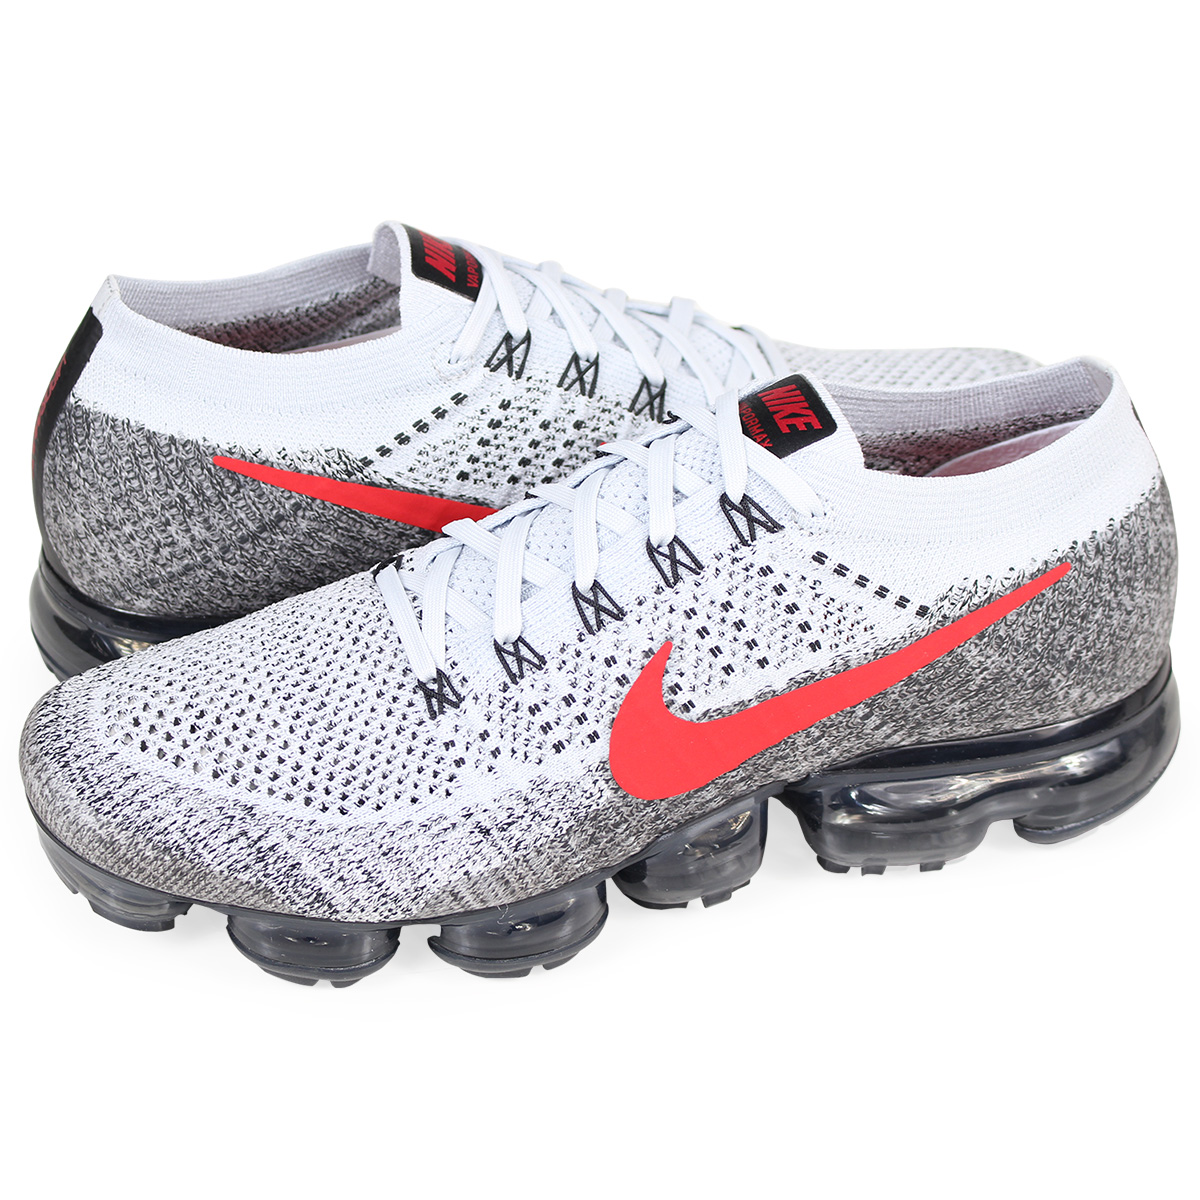 the latest 2310d 0c9e5 NIKE AIR VAPORMAX FLYKNIT Nike air vapor max fried food knit sneakers men  849,558-020 ...